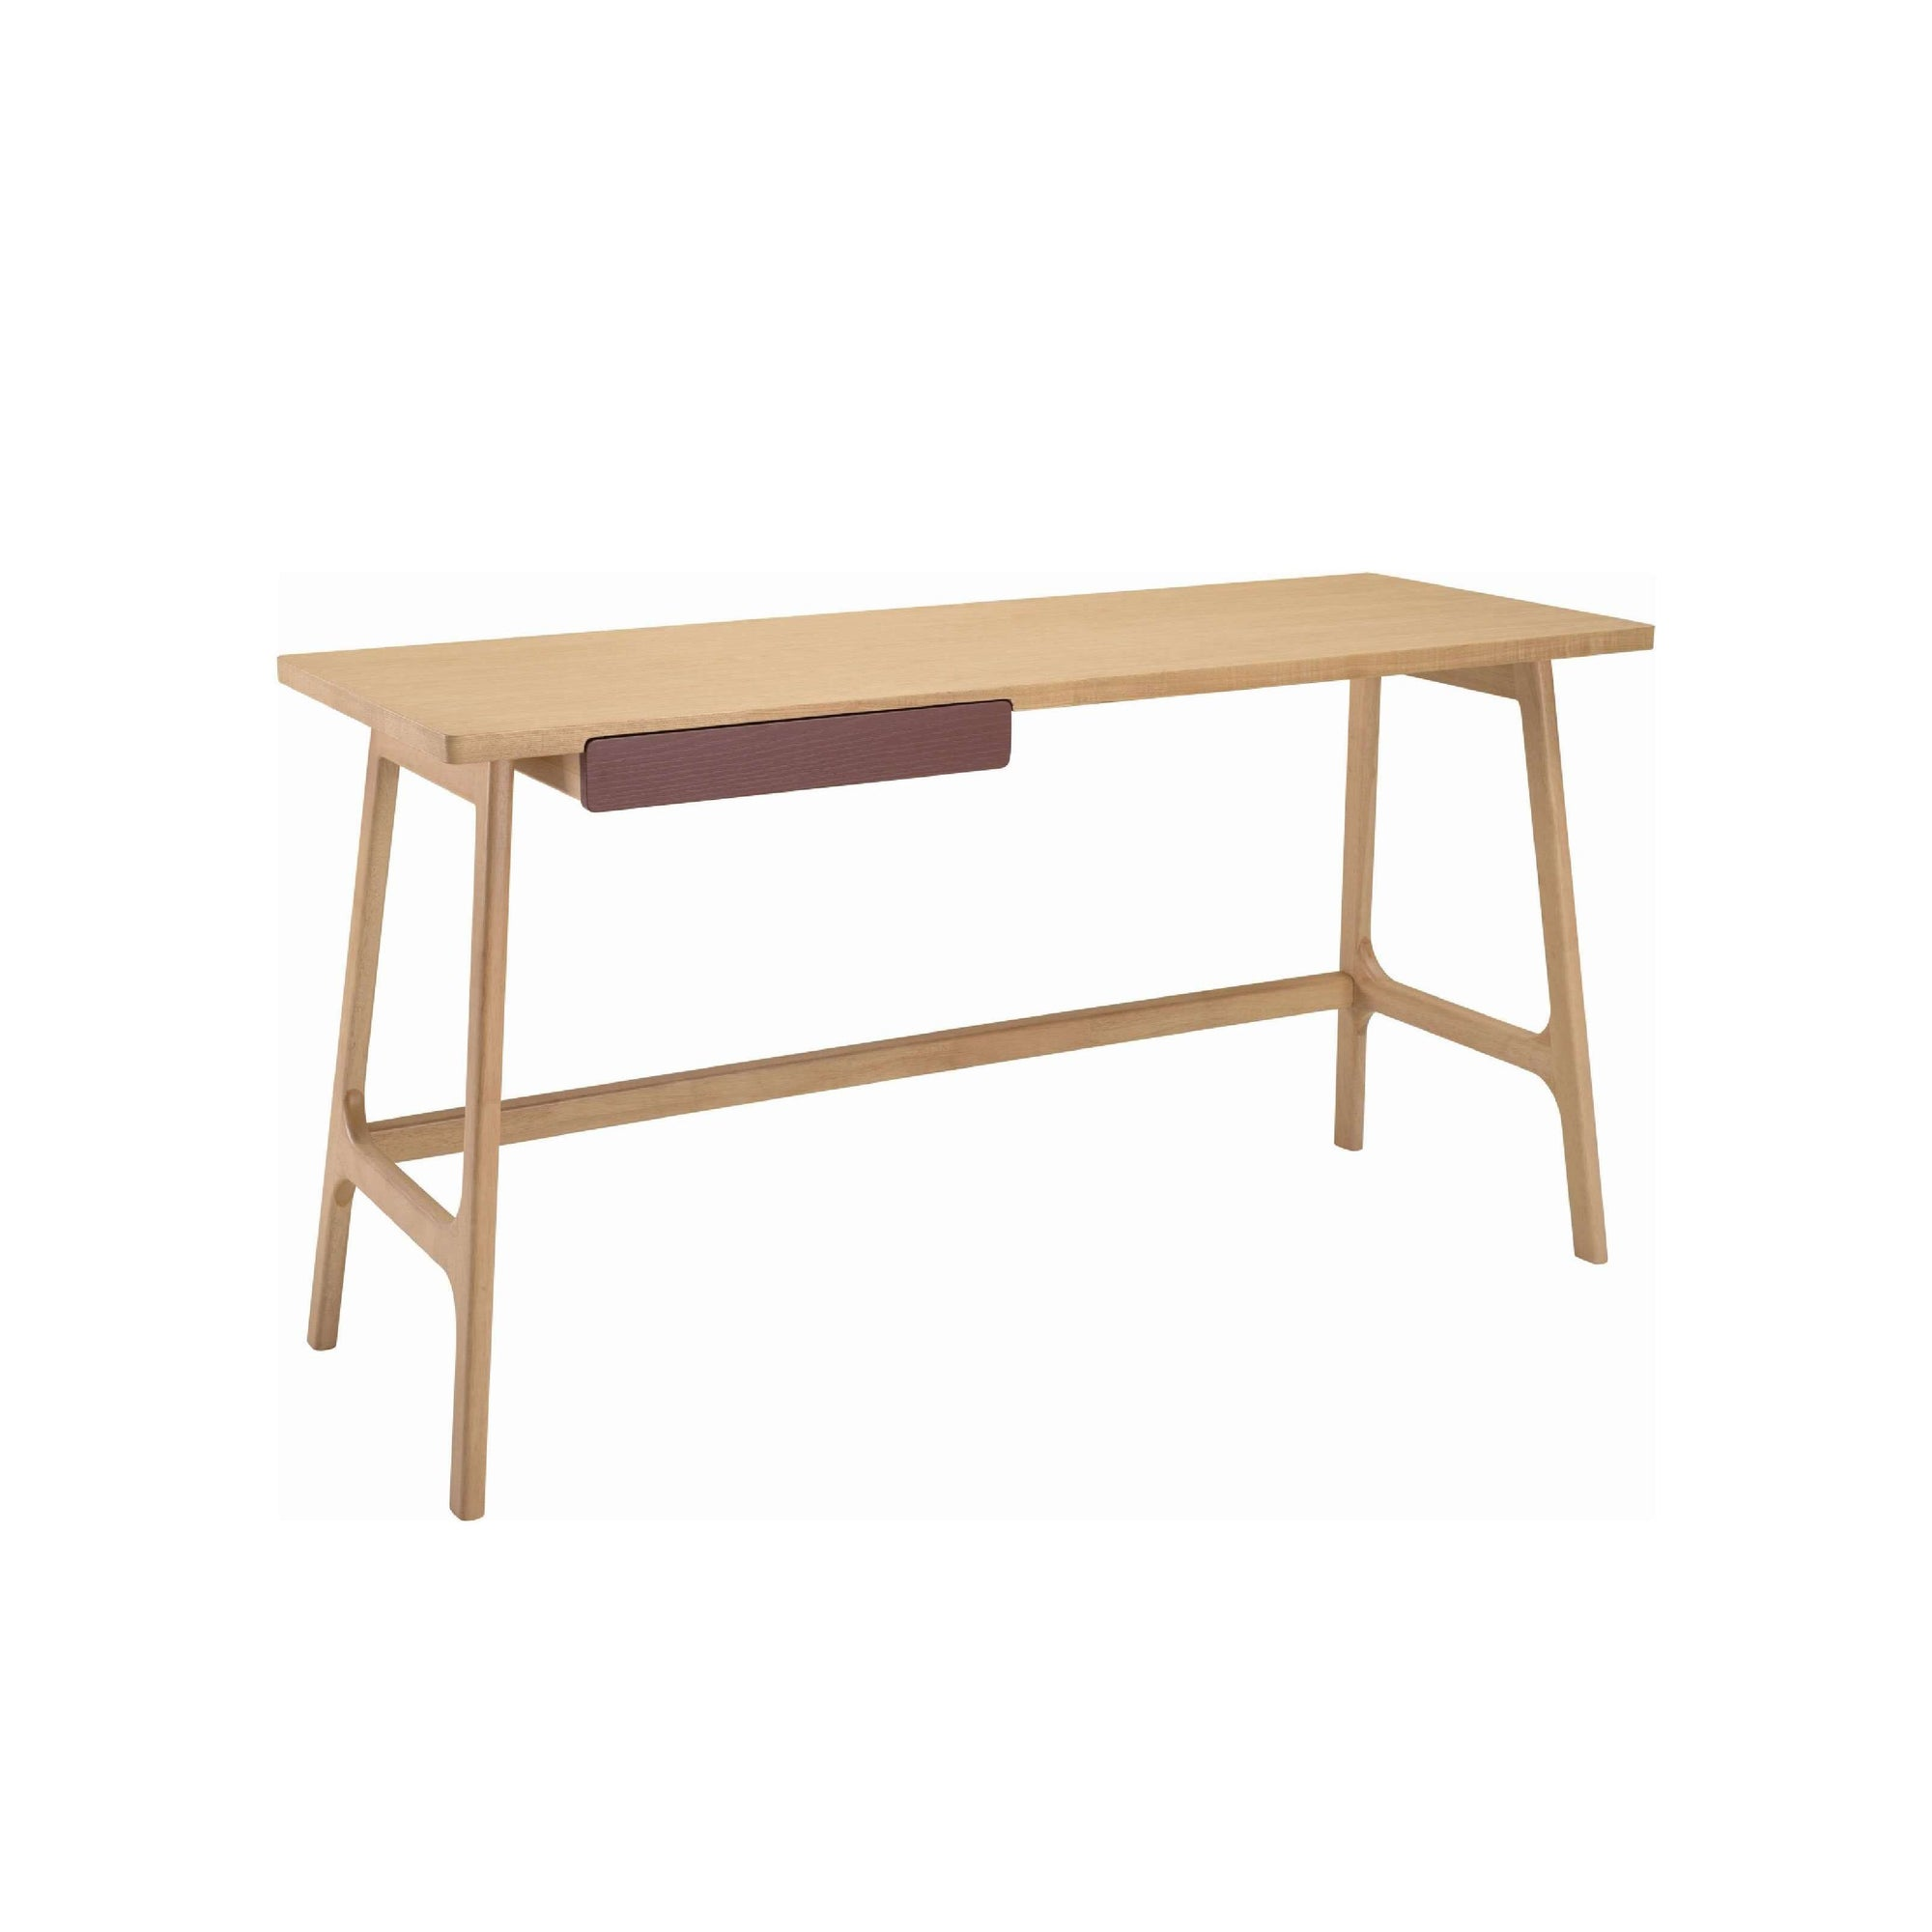 MOREY Working Desk In Natural Colour, Penny Brown Colour Drawer